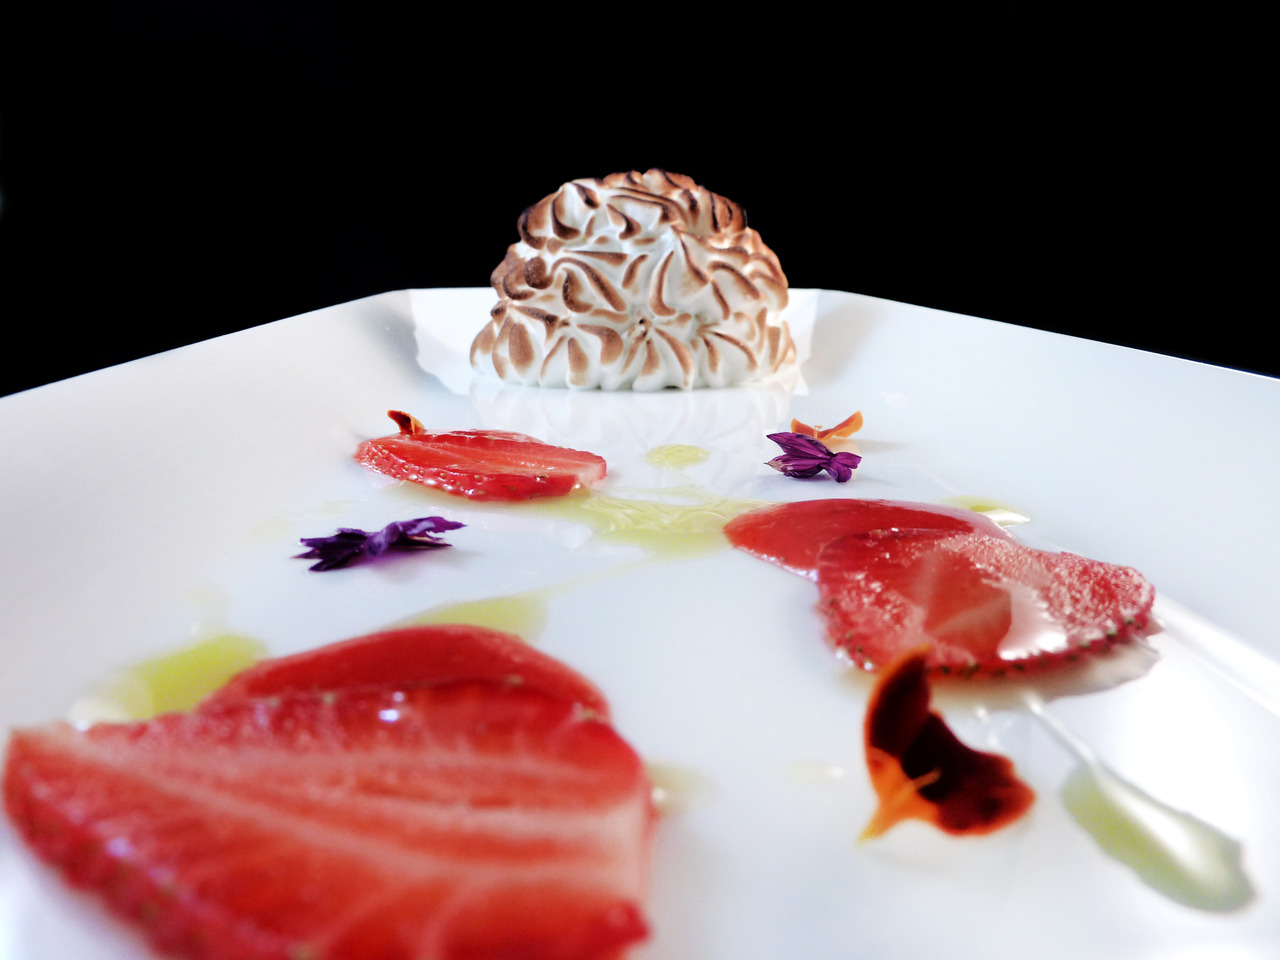 BAKED CALIFORNIA   avocado sherbet - olive oil chiffon - strawberries    Our pastry chef's take on a Baked Alaska.